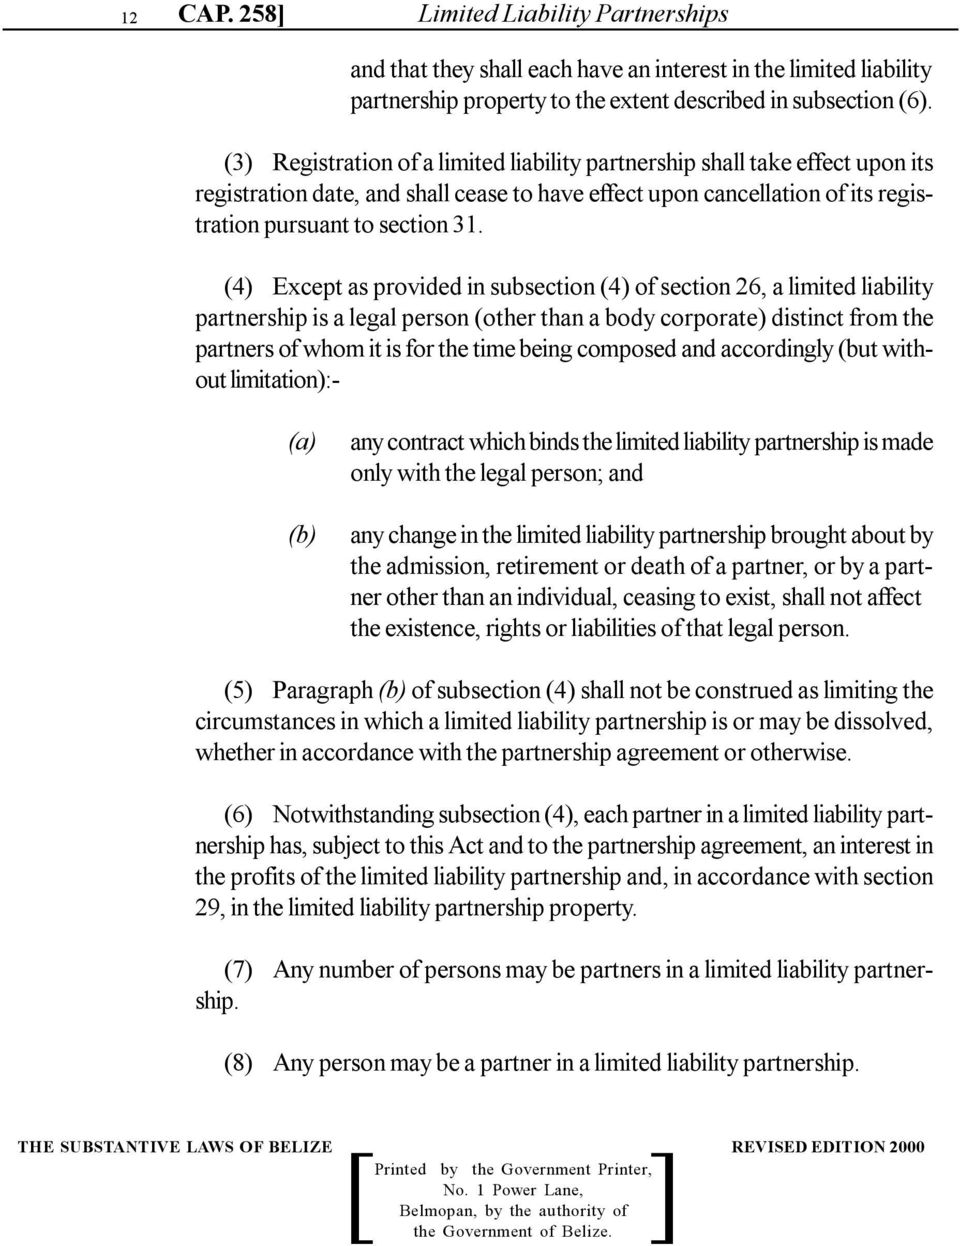 (4) Except as provided in subsection (4) of section 26, a limited liability partnership is a legal person (other than a body corporate) distinct from the partners of whom it is for the time being